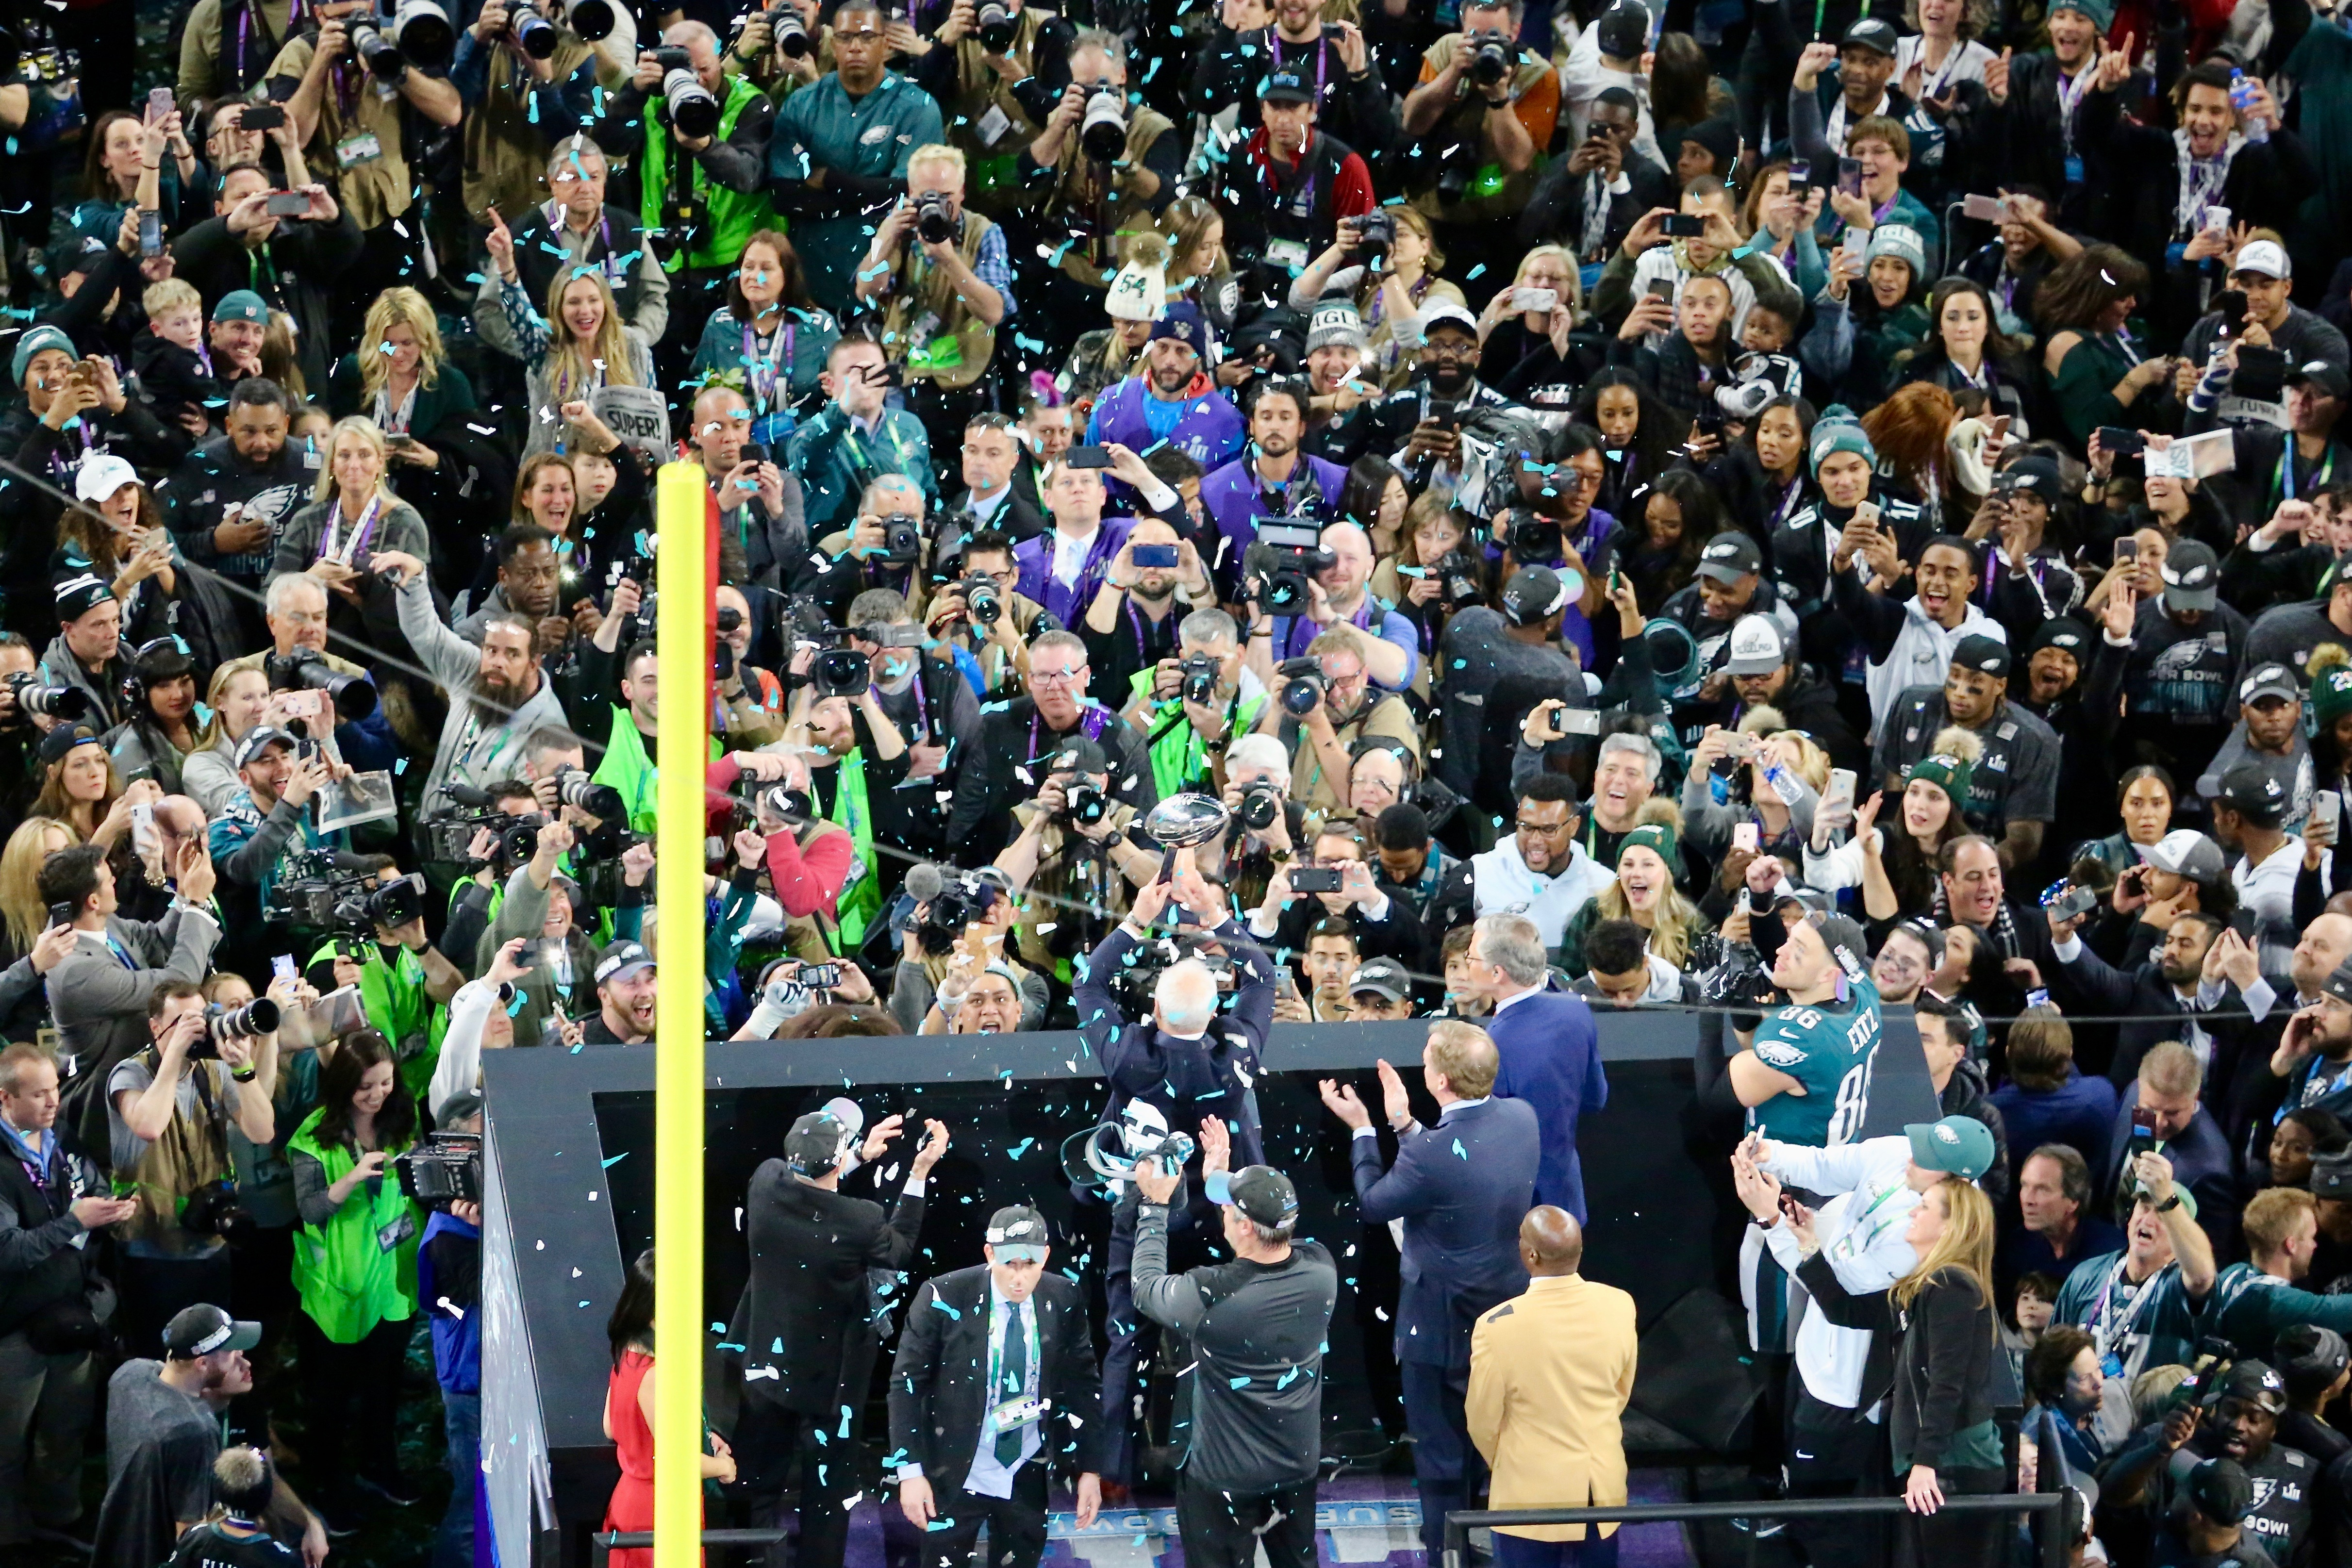 The Philadelphia Eagles are presented with the Vince Lombardi Trophy in honor of winning Super Bowl LII in Minneapolis, Minnesota (Brian Allen/VOA)